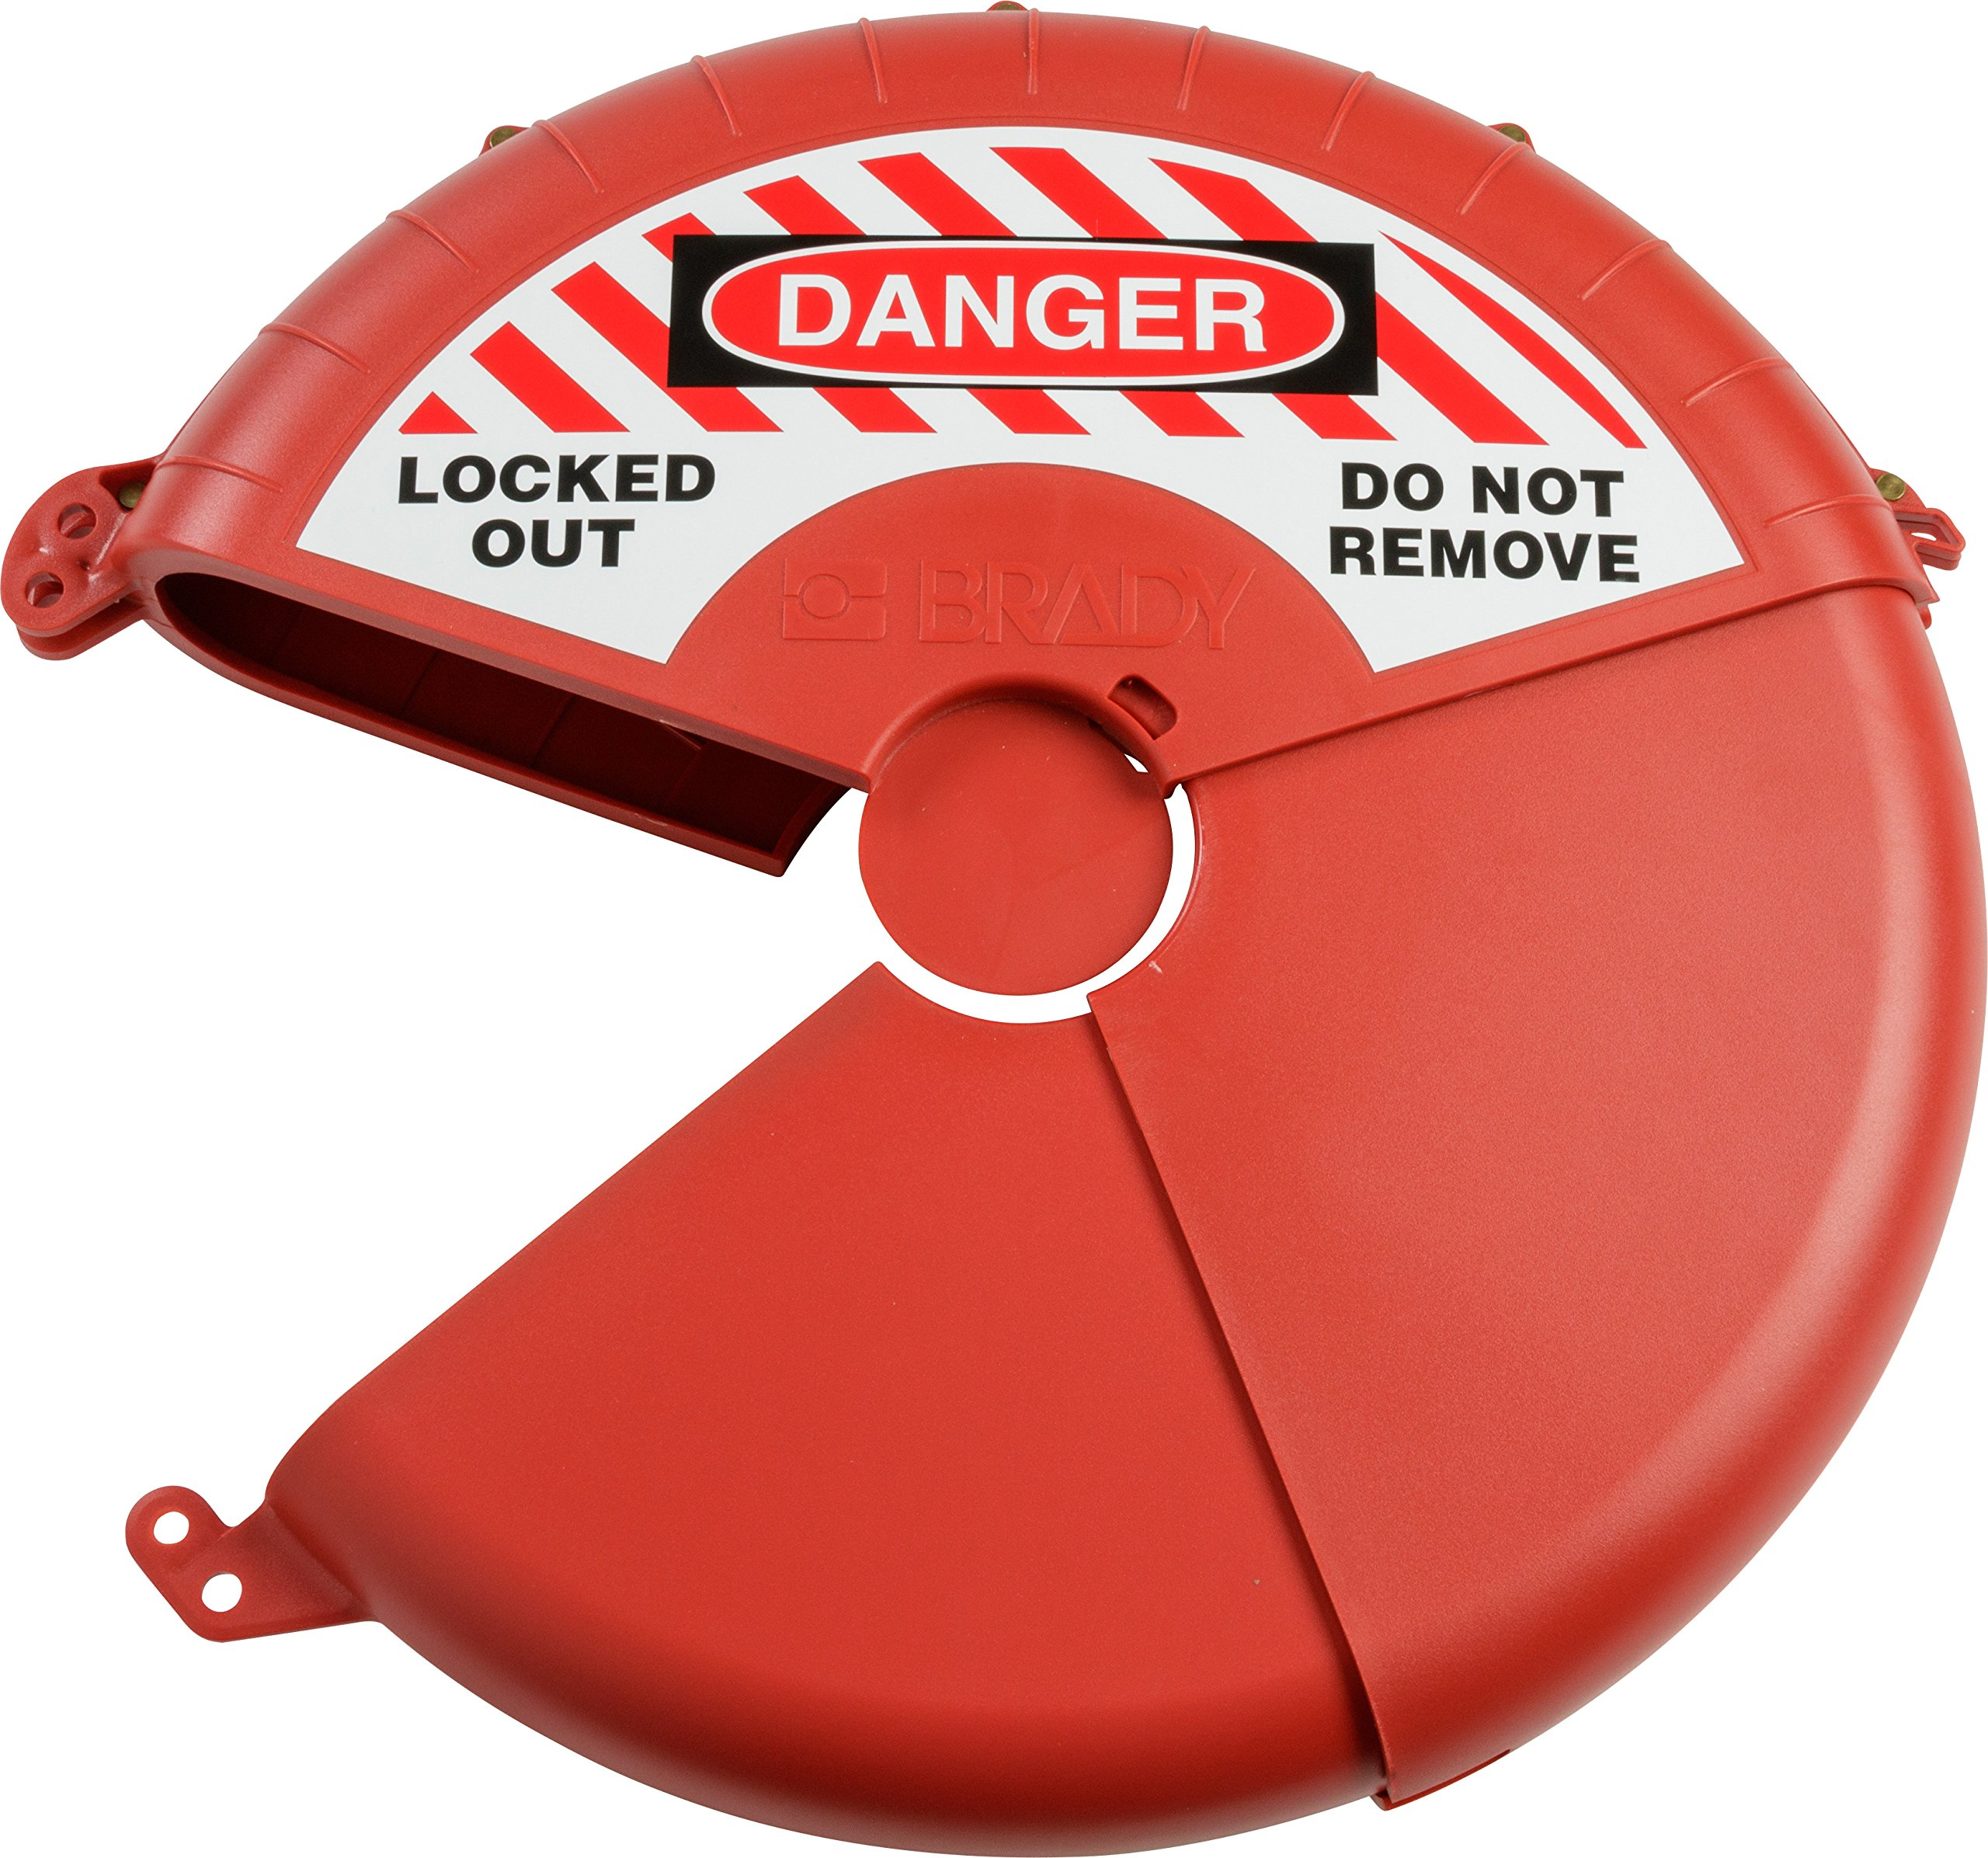 Brady Collapsible Gate Valve Lockout Device - Compatible with Gate Valves 13-18'' in Diameter - Red - 148646 by Brady (Image #2)